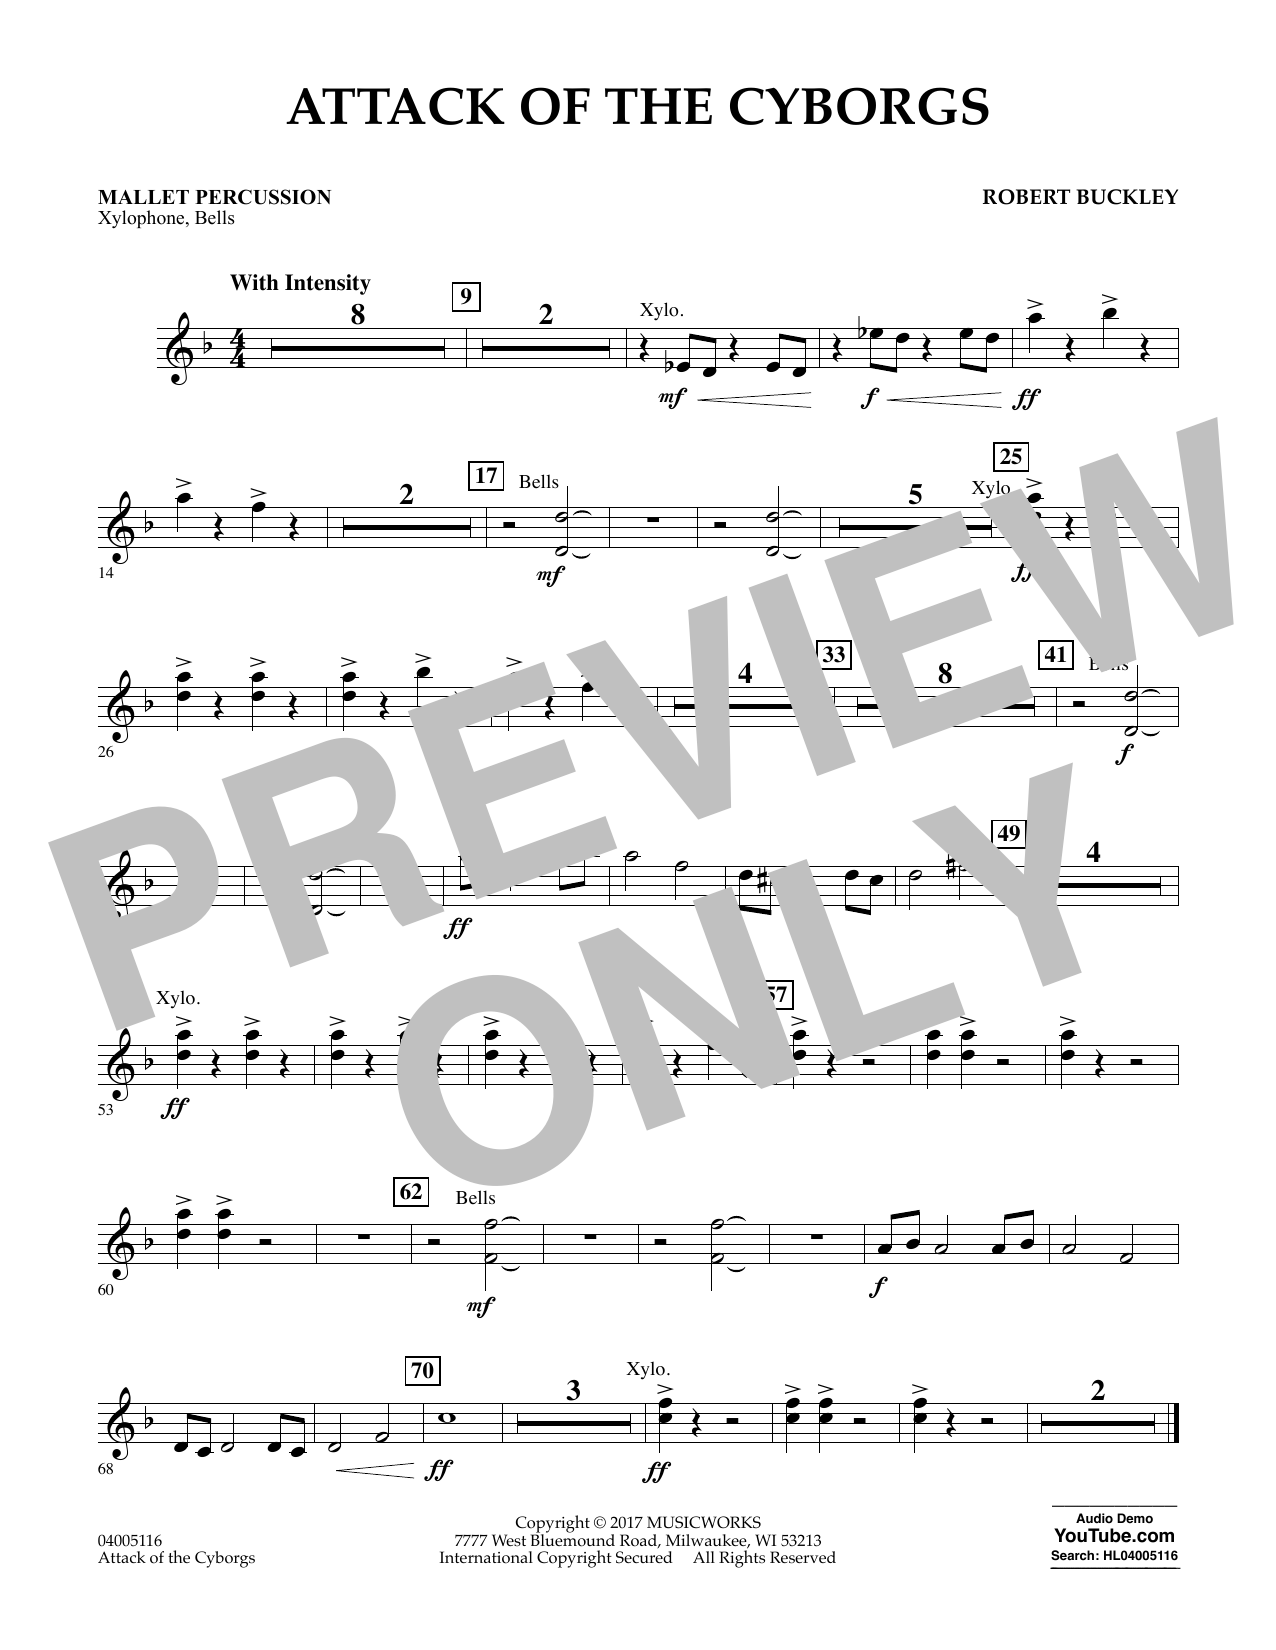 Robert Buckley Attack of the Cyborgs - Mallet Percussion sheet music notes and chords. Download Printable PDF.